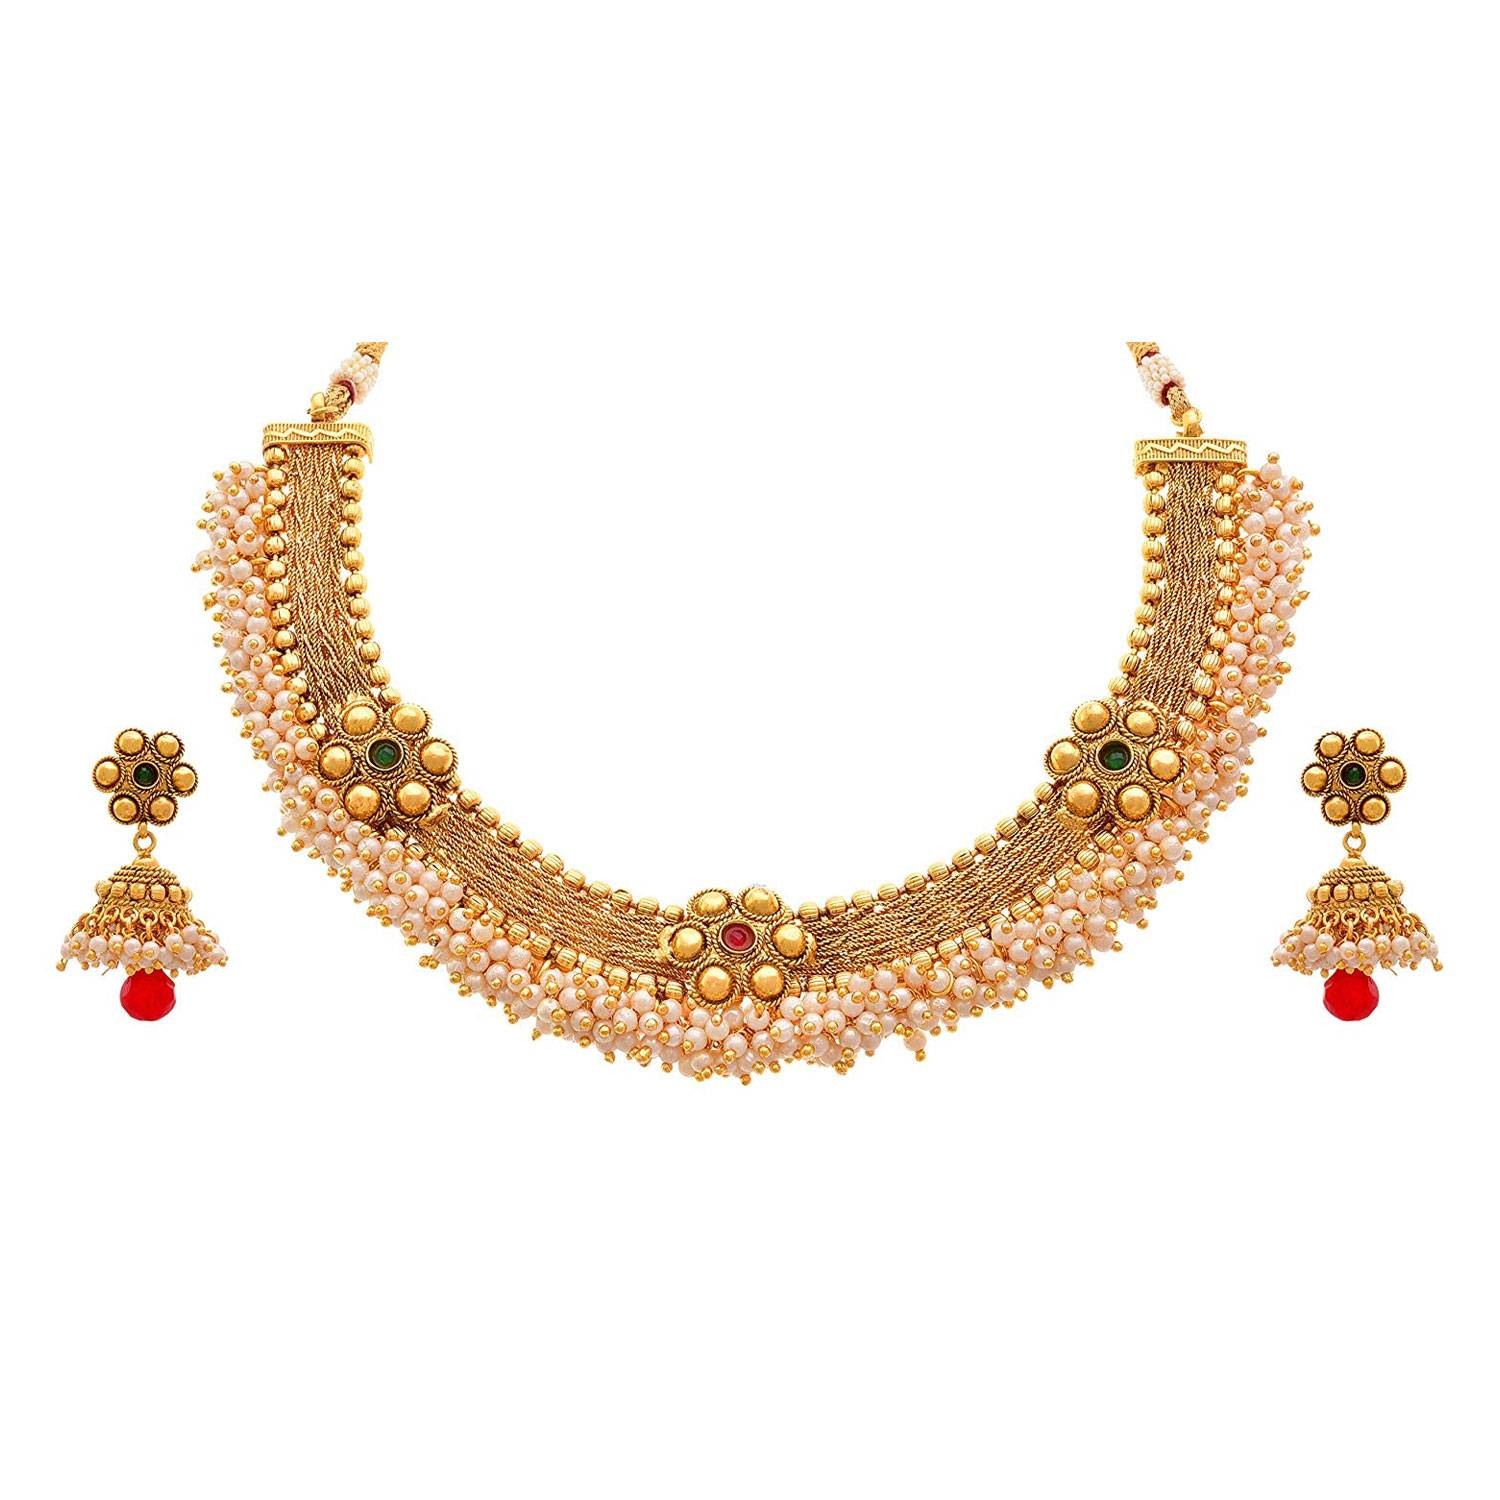 JFL - Traditional Ethnic One Gram Gold Plated Stone & Pearls Designer Necklace Set With Jhumka Earring for Women & Girls